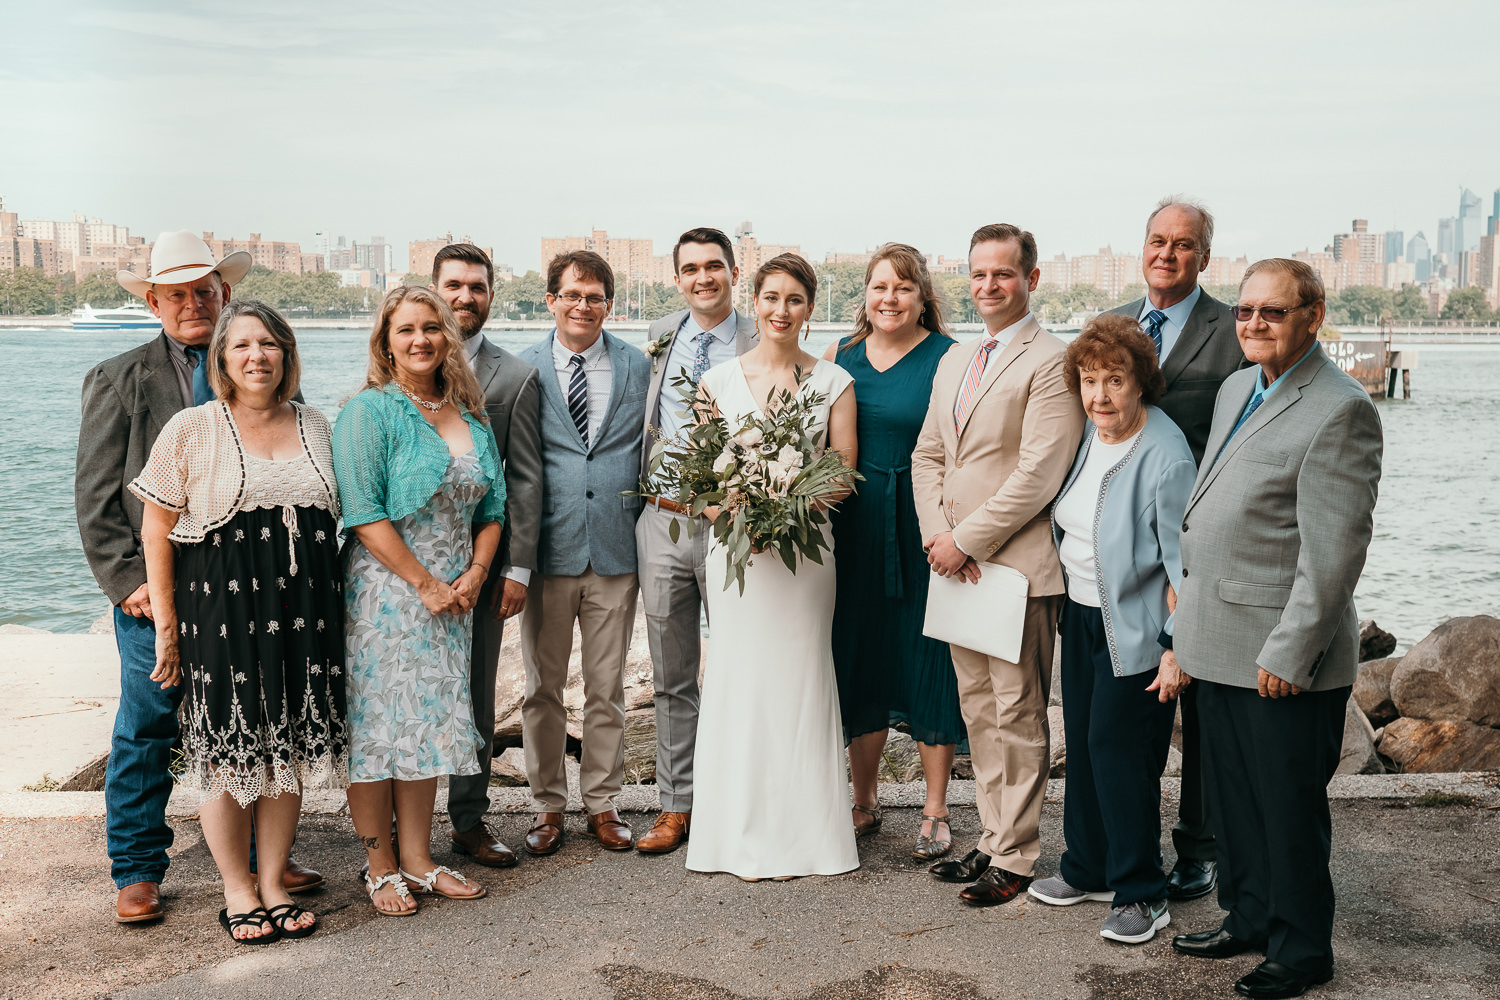 immediate family picture near water newlyweds in the middle